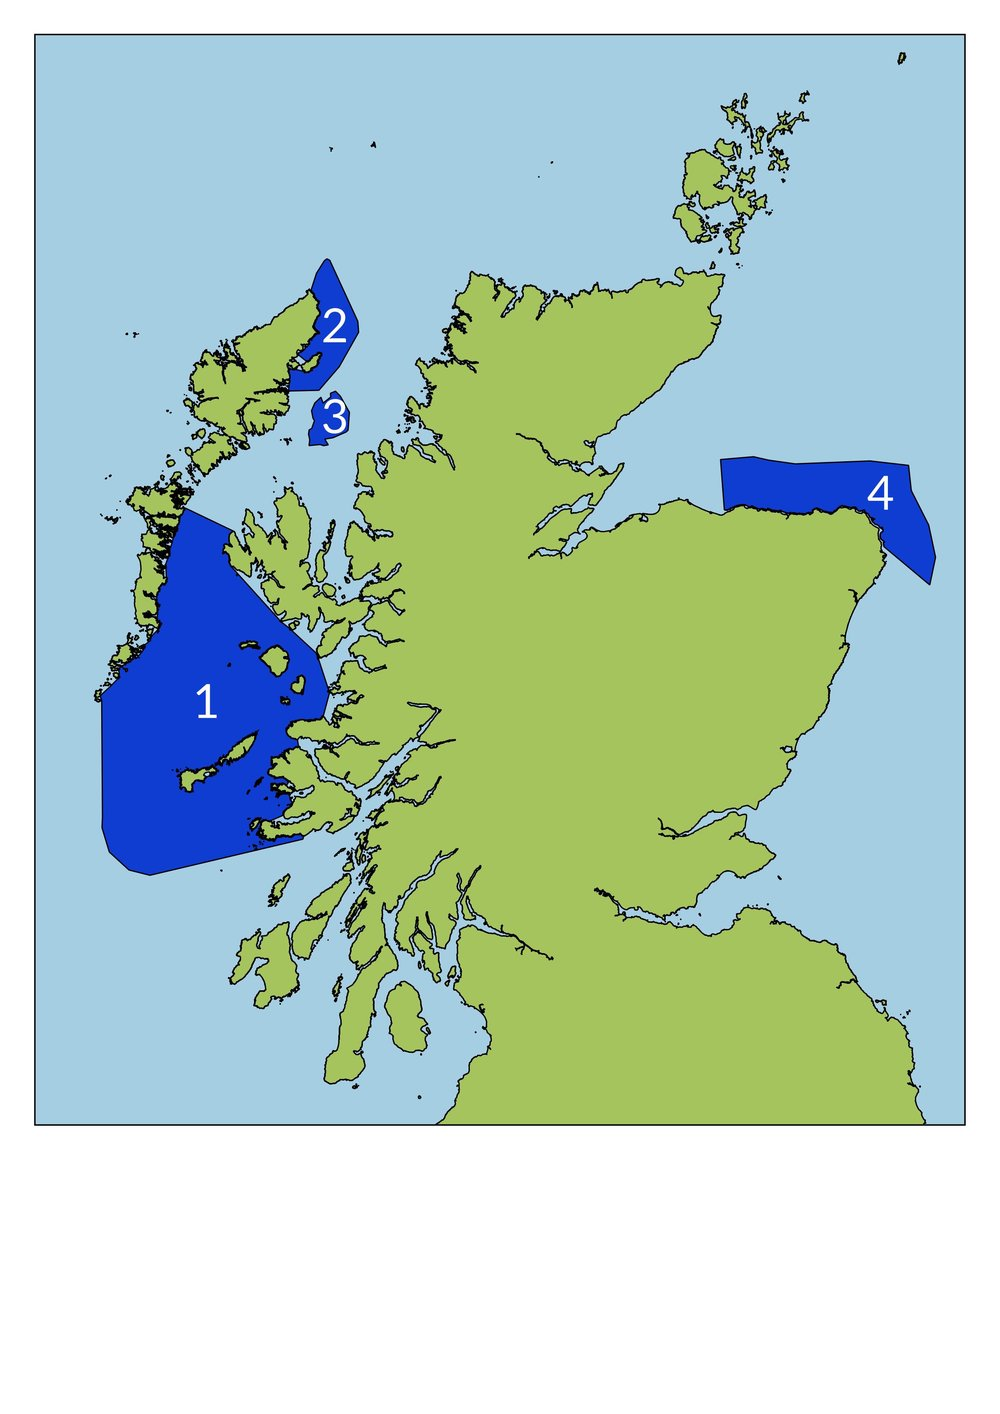 Locations of proposed sites 1.) Sea of the Hebrides protected features include minke whales and basking sharks, 2.) North East Lewis MPA protected features include Risso's dolphins and sandeels, 3.) Shiant East Bank, 4.) Southern Trench protected features include minke whales.